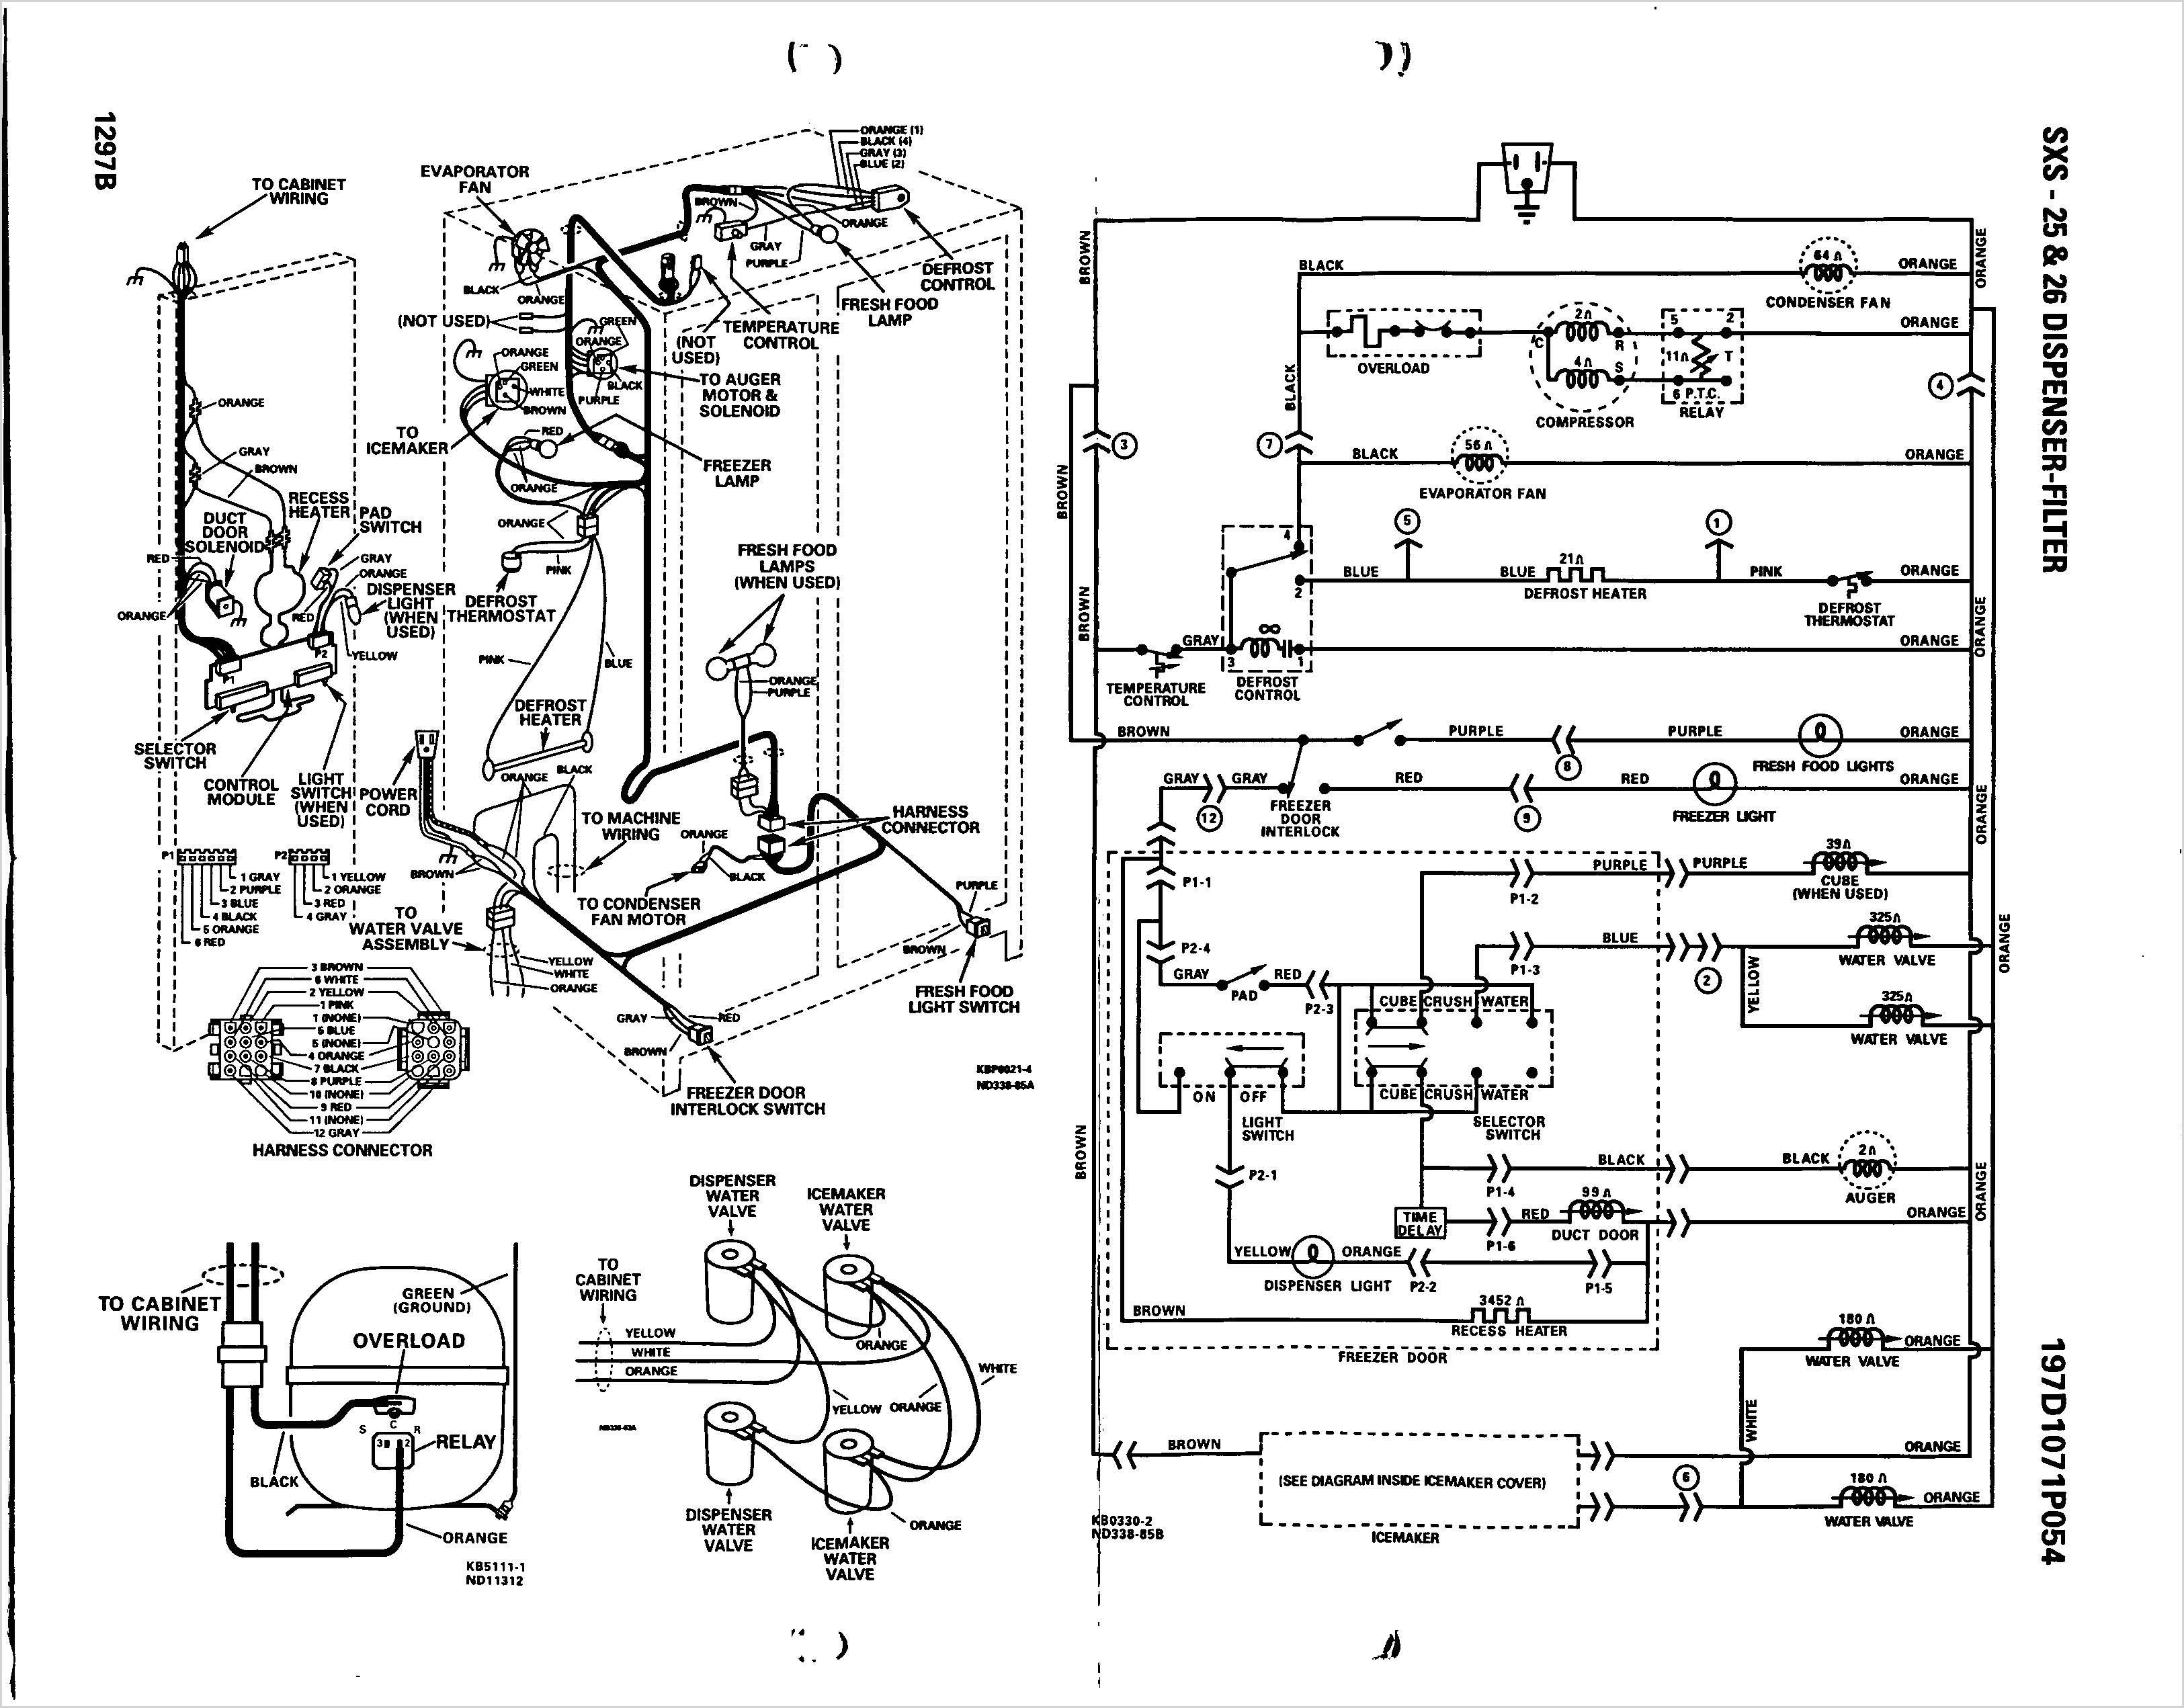 Ge Dishwasher Wiring Diagram Wolf Range Wiring Diagram Wiring Data Of Ge  Dishwasher Wiring Diagram Wiring